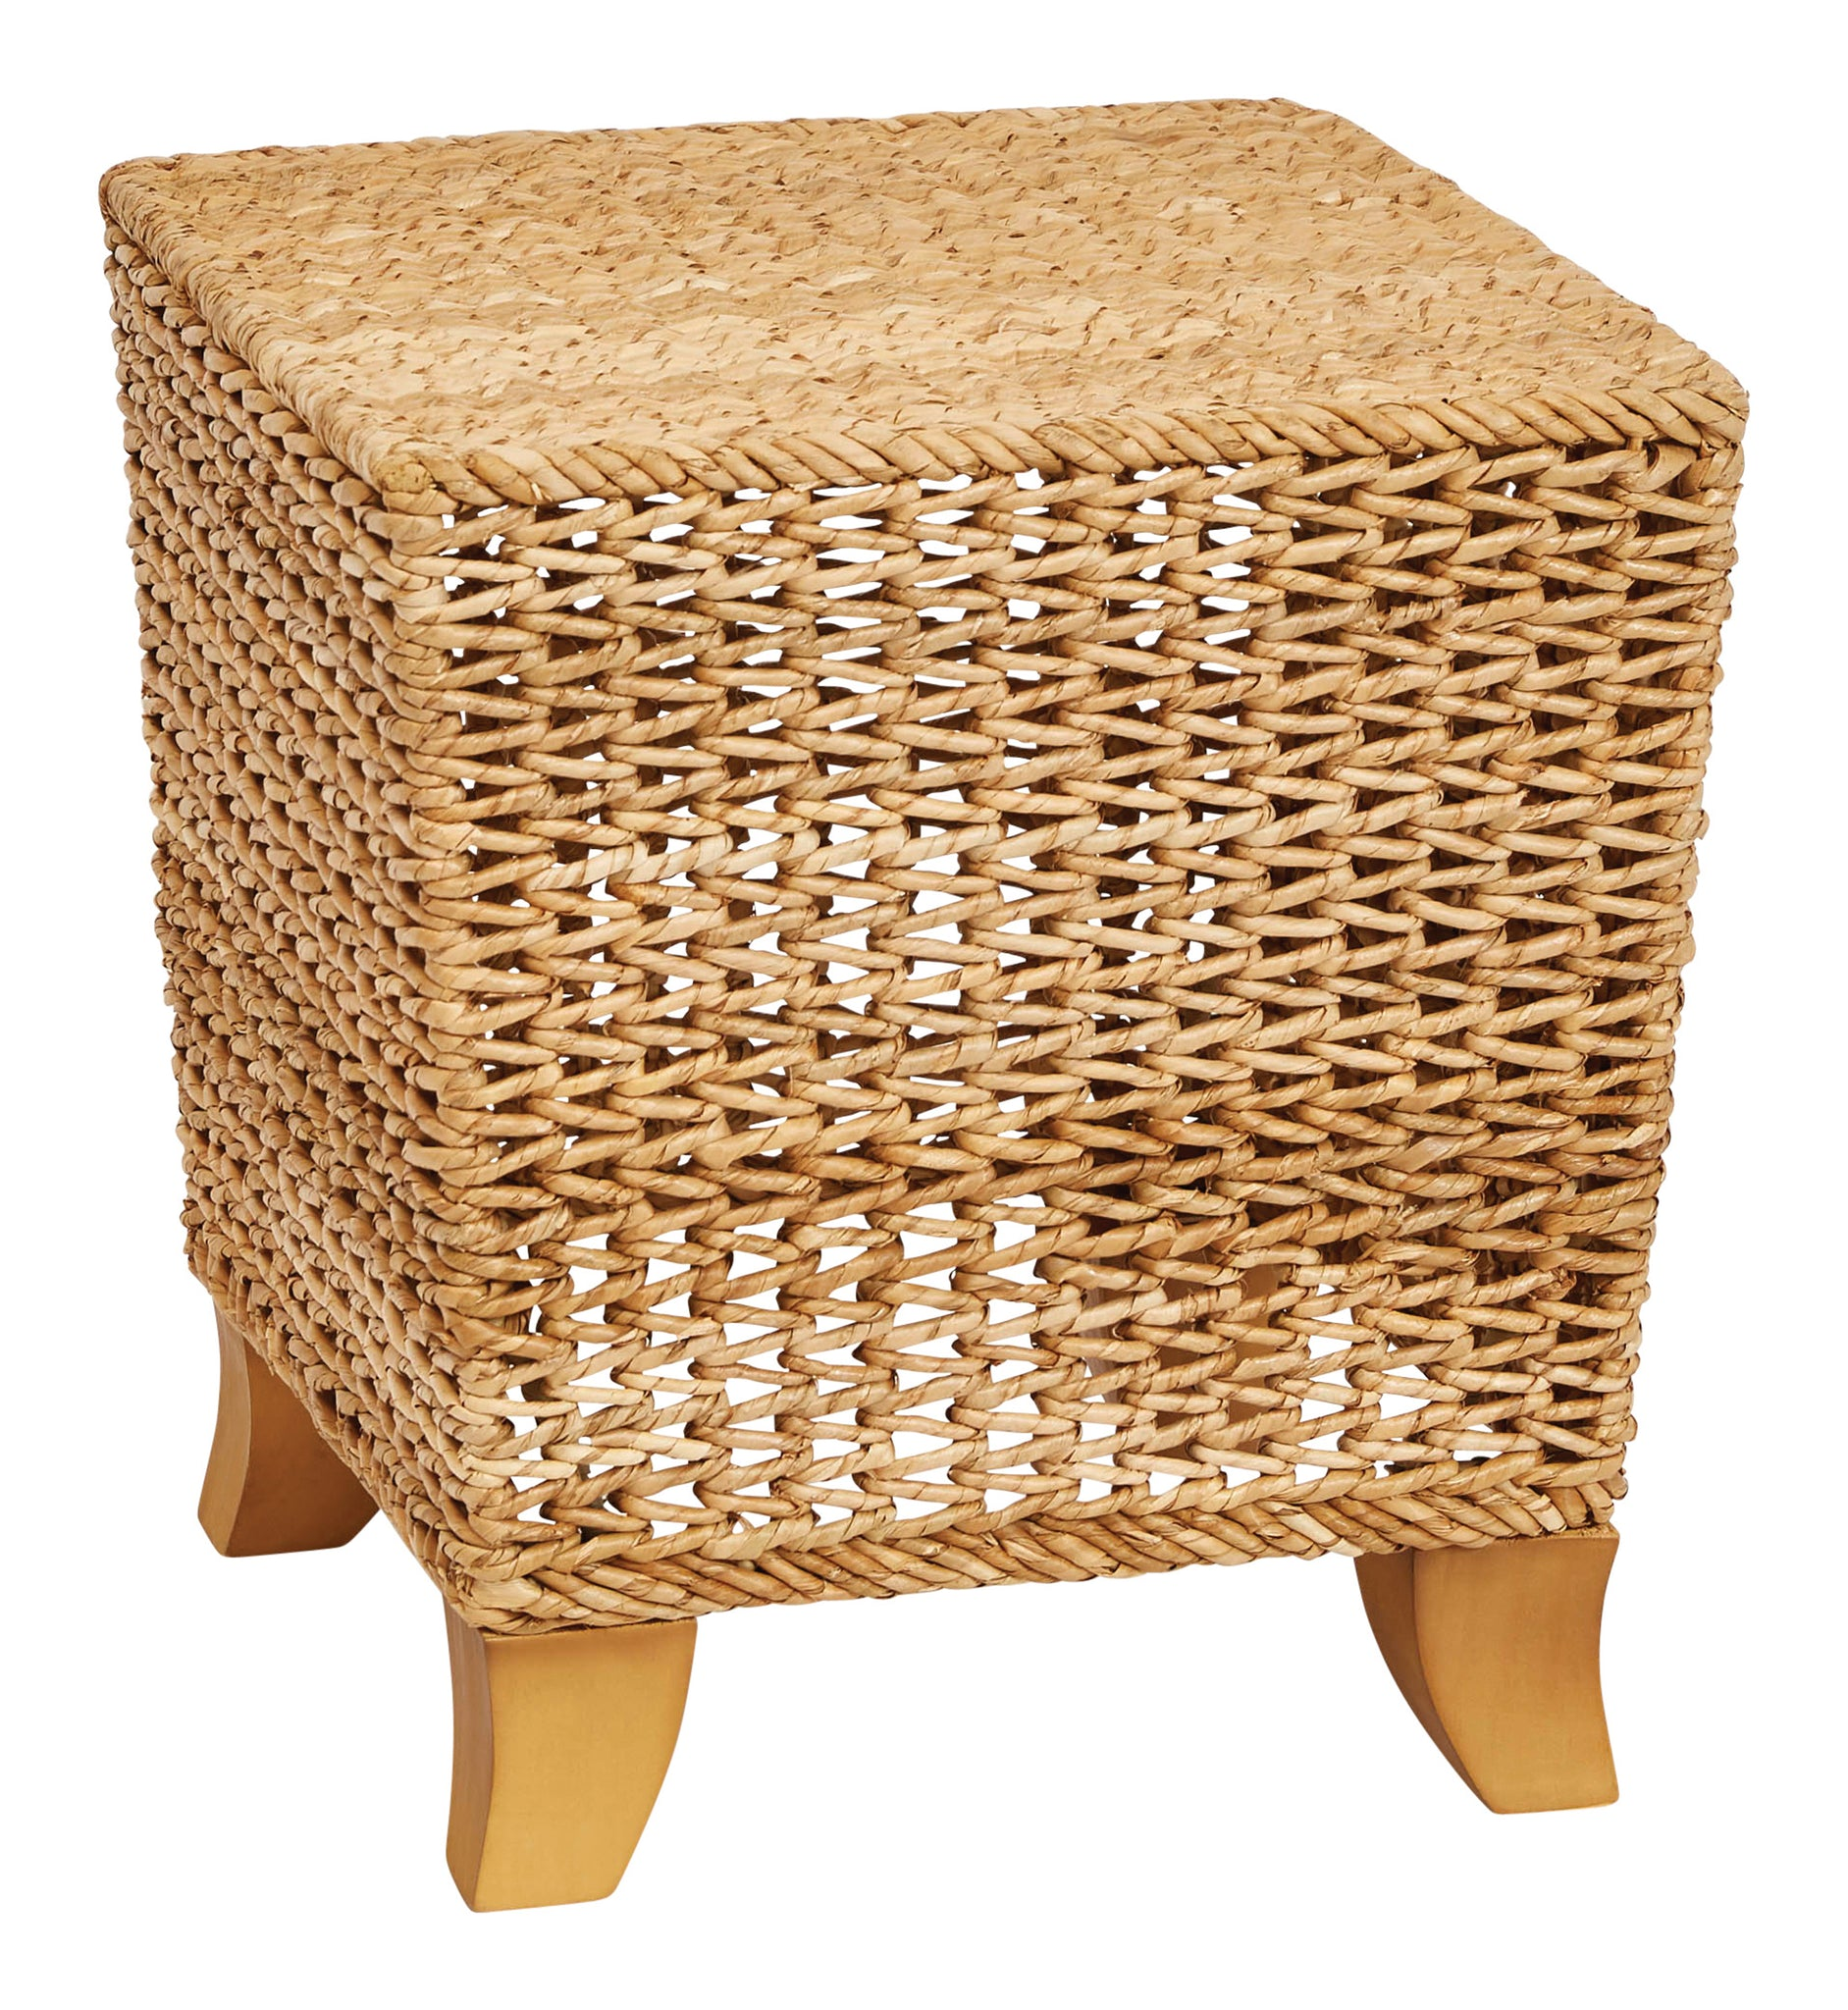 "14""H Water Hyacinth & Rattan Stool with Wood Legs"